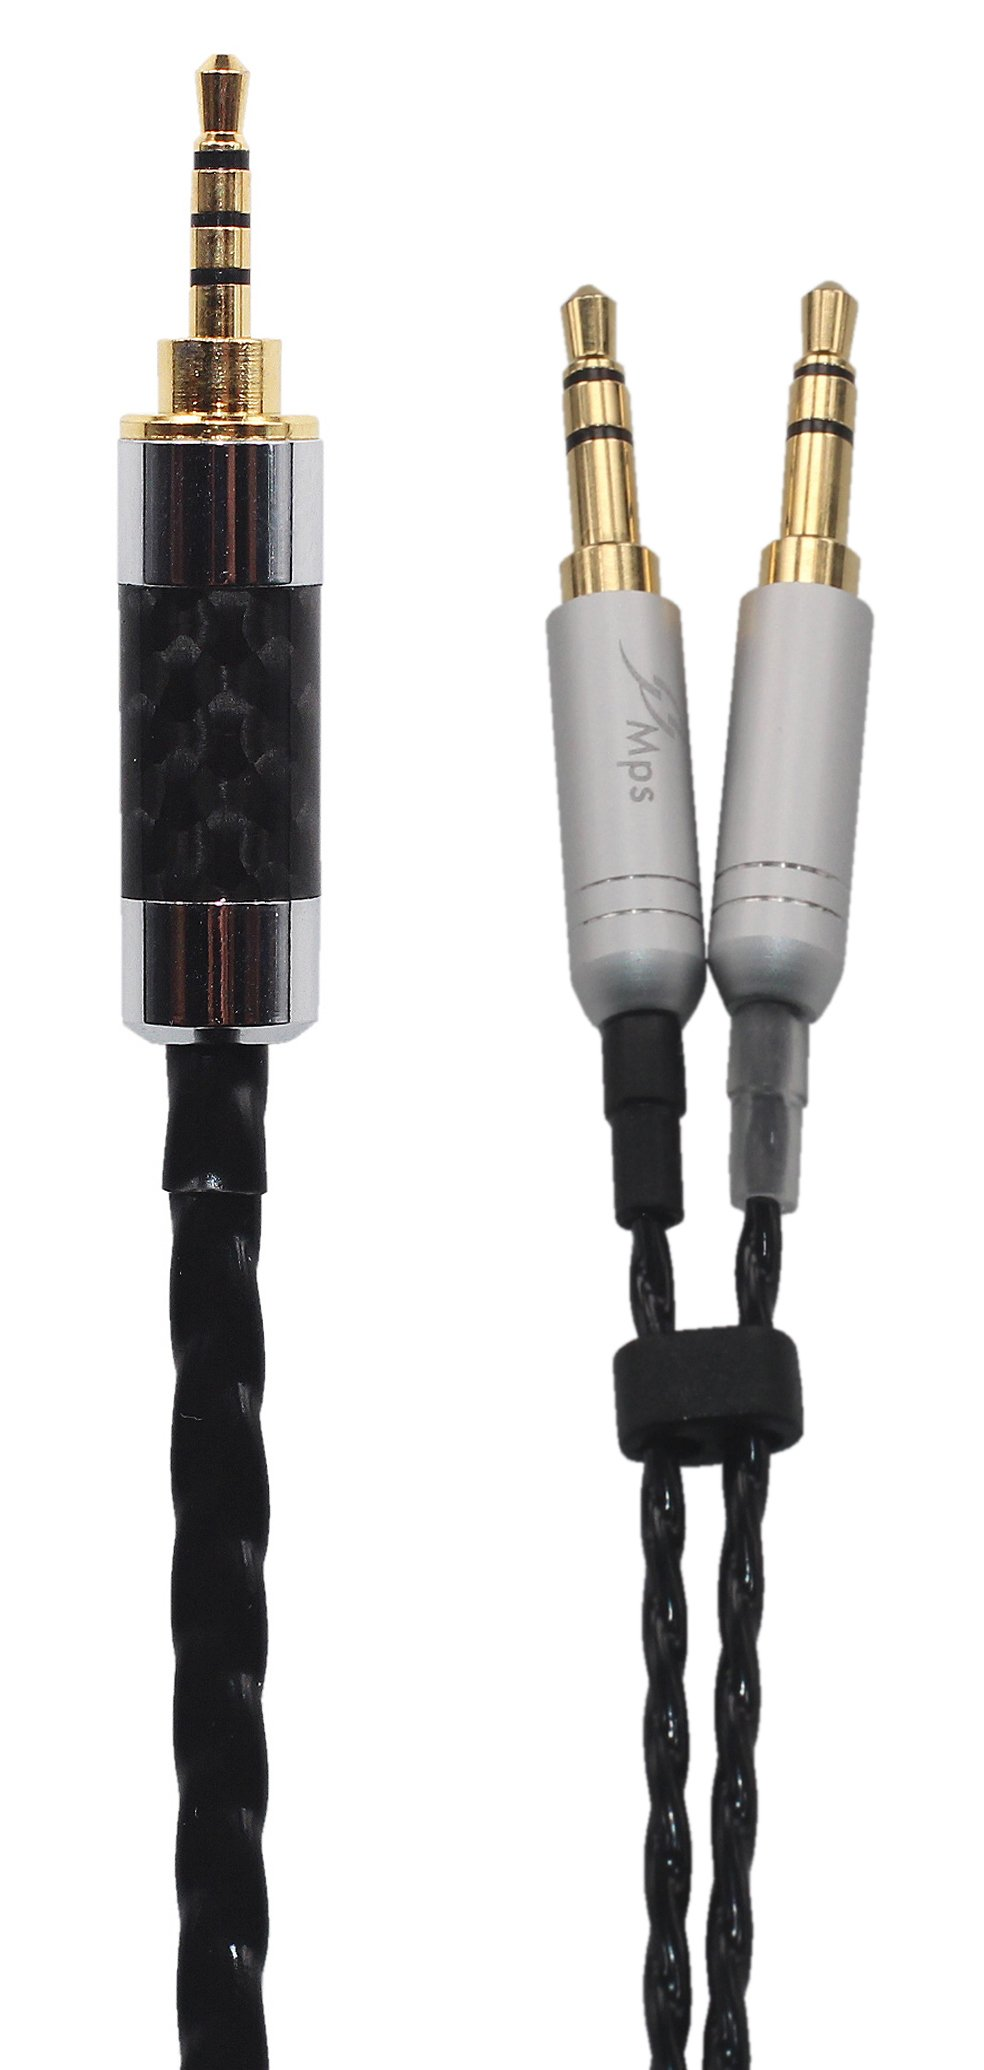 KK Cable GX-7 Compatible Upgrade Audio Cable Replacement for Earphone Cable Beyerdynamic T1 II, T5 Headphone. 2.5mm Trrs Balanced Male to Dual 3.5mm Connector cable. GX-7 (4.9ft (1.5M))